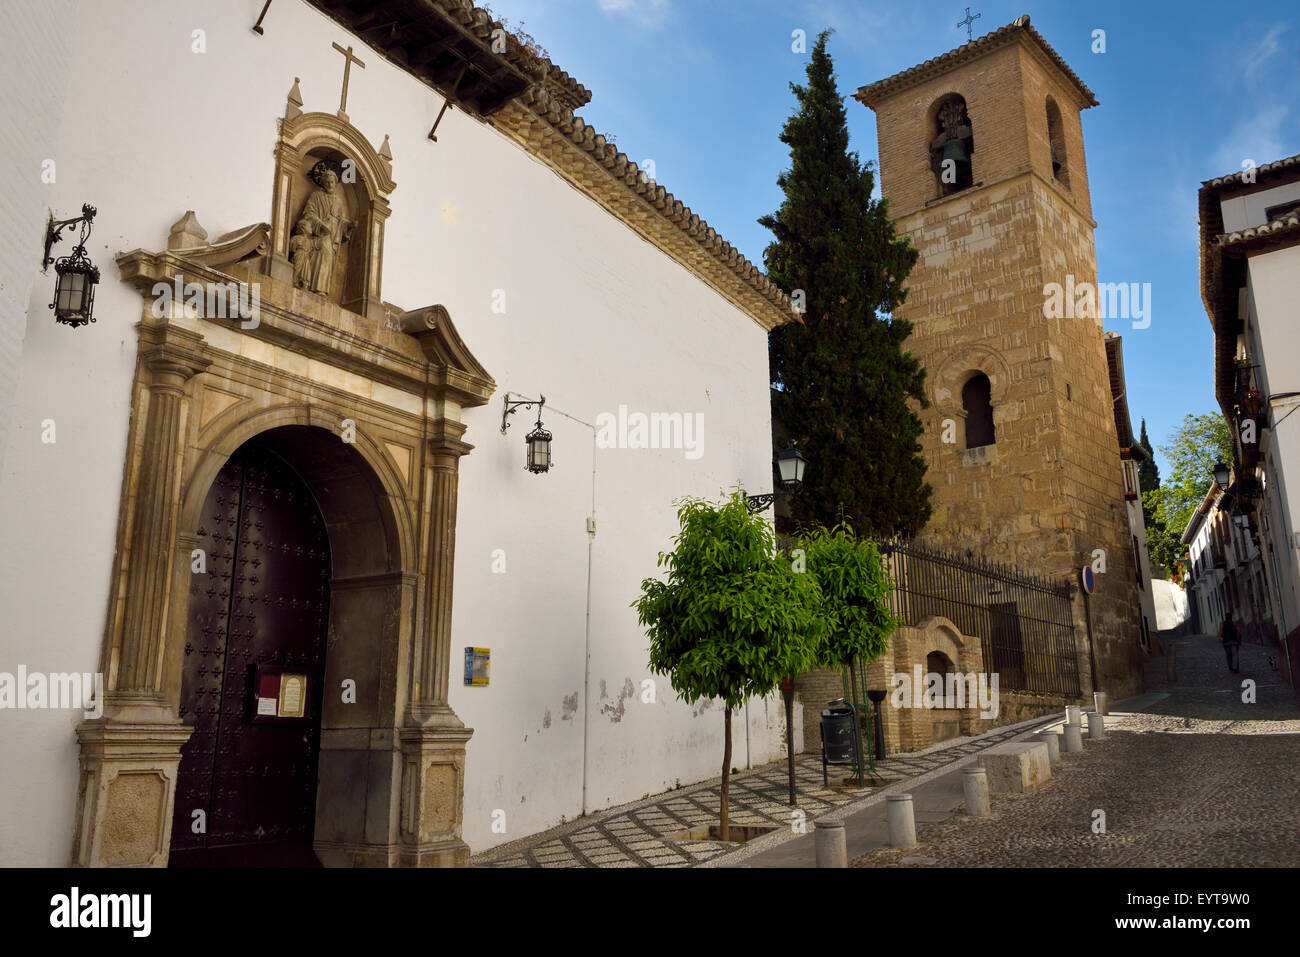 Church of Saint Joseph foster father of Jesus with minaret converted to bell tower Granada - Stock Image